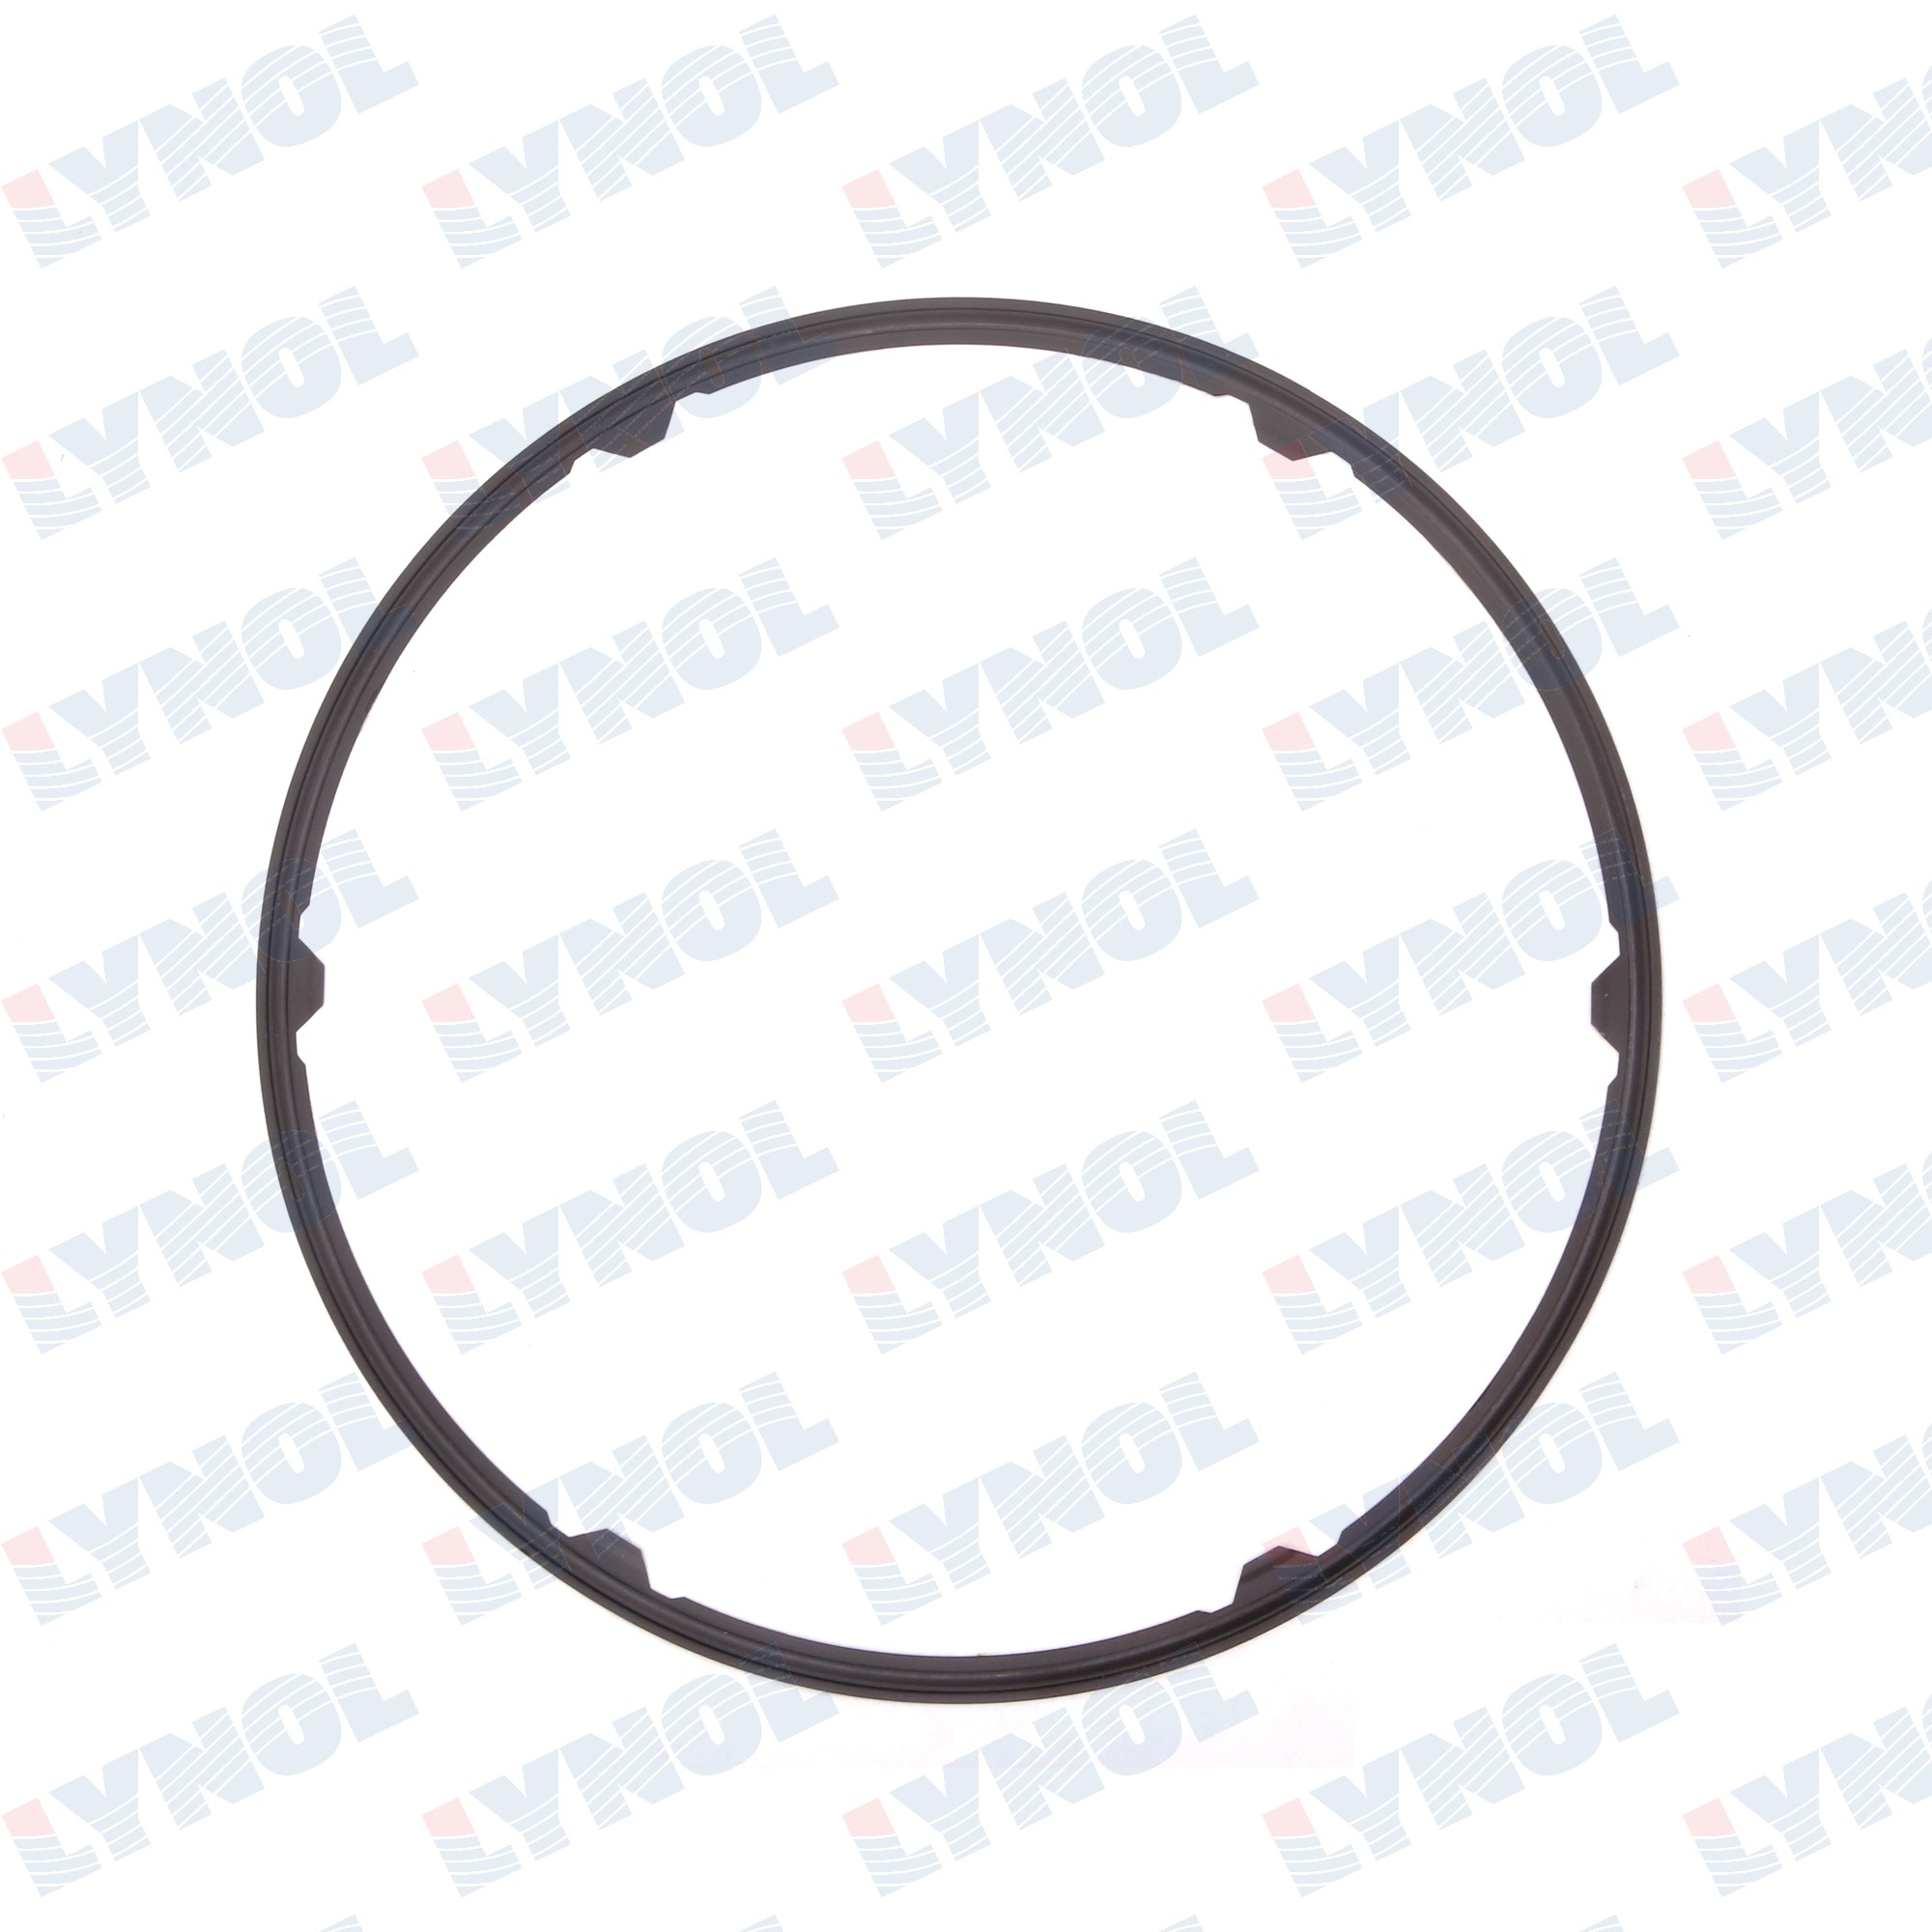 "4501015 - GASKET - Caterpillar 278-5711 Metal 14.375"" OD x 13.5"" ID"